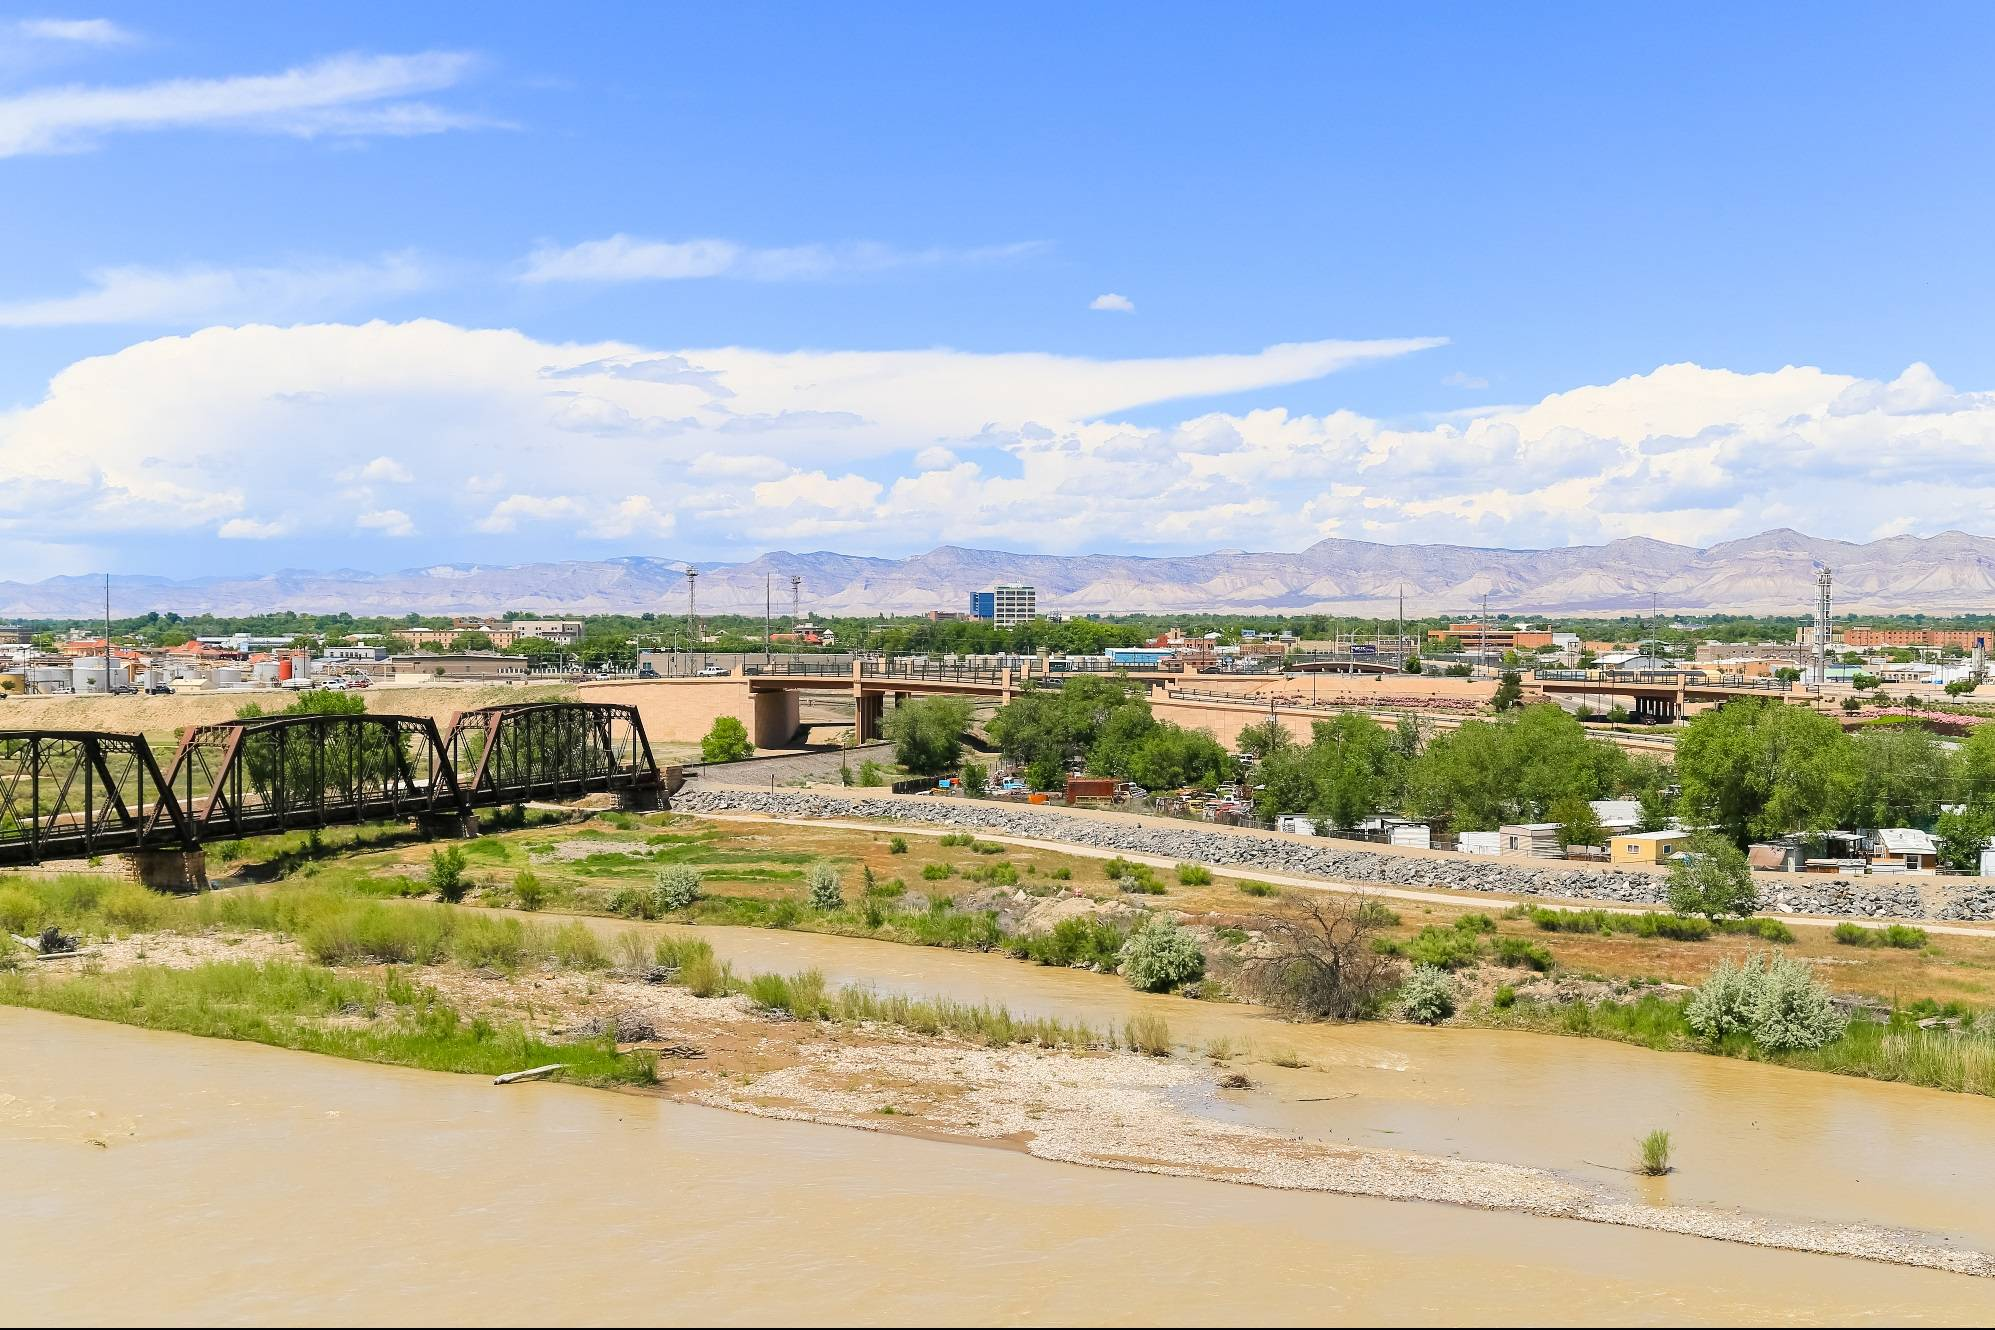 Confluence of the Colorado and the Gunnison, Grand Junction and the Book Cliffs in the background.